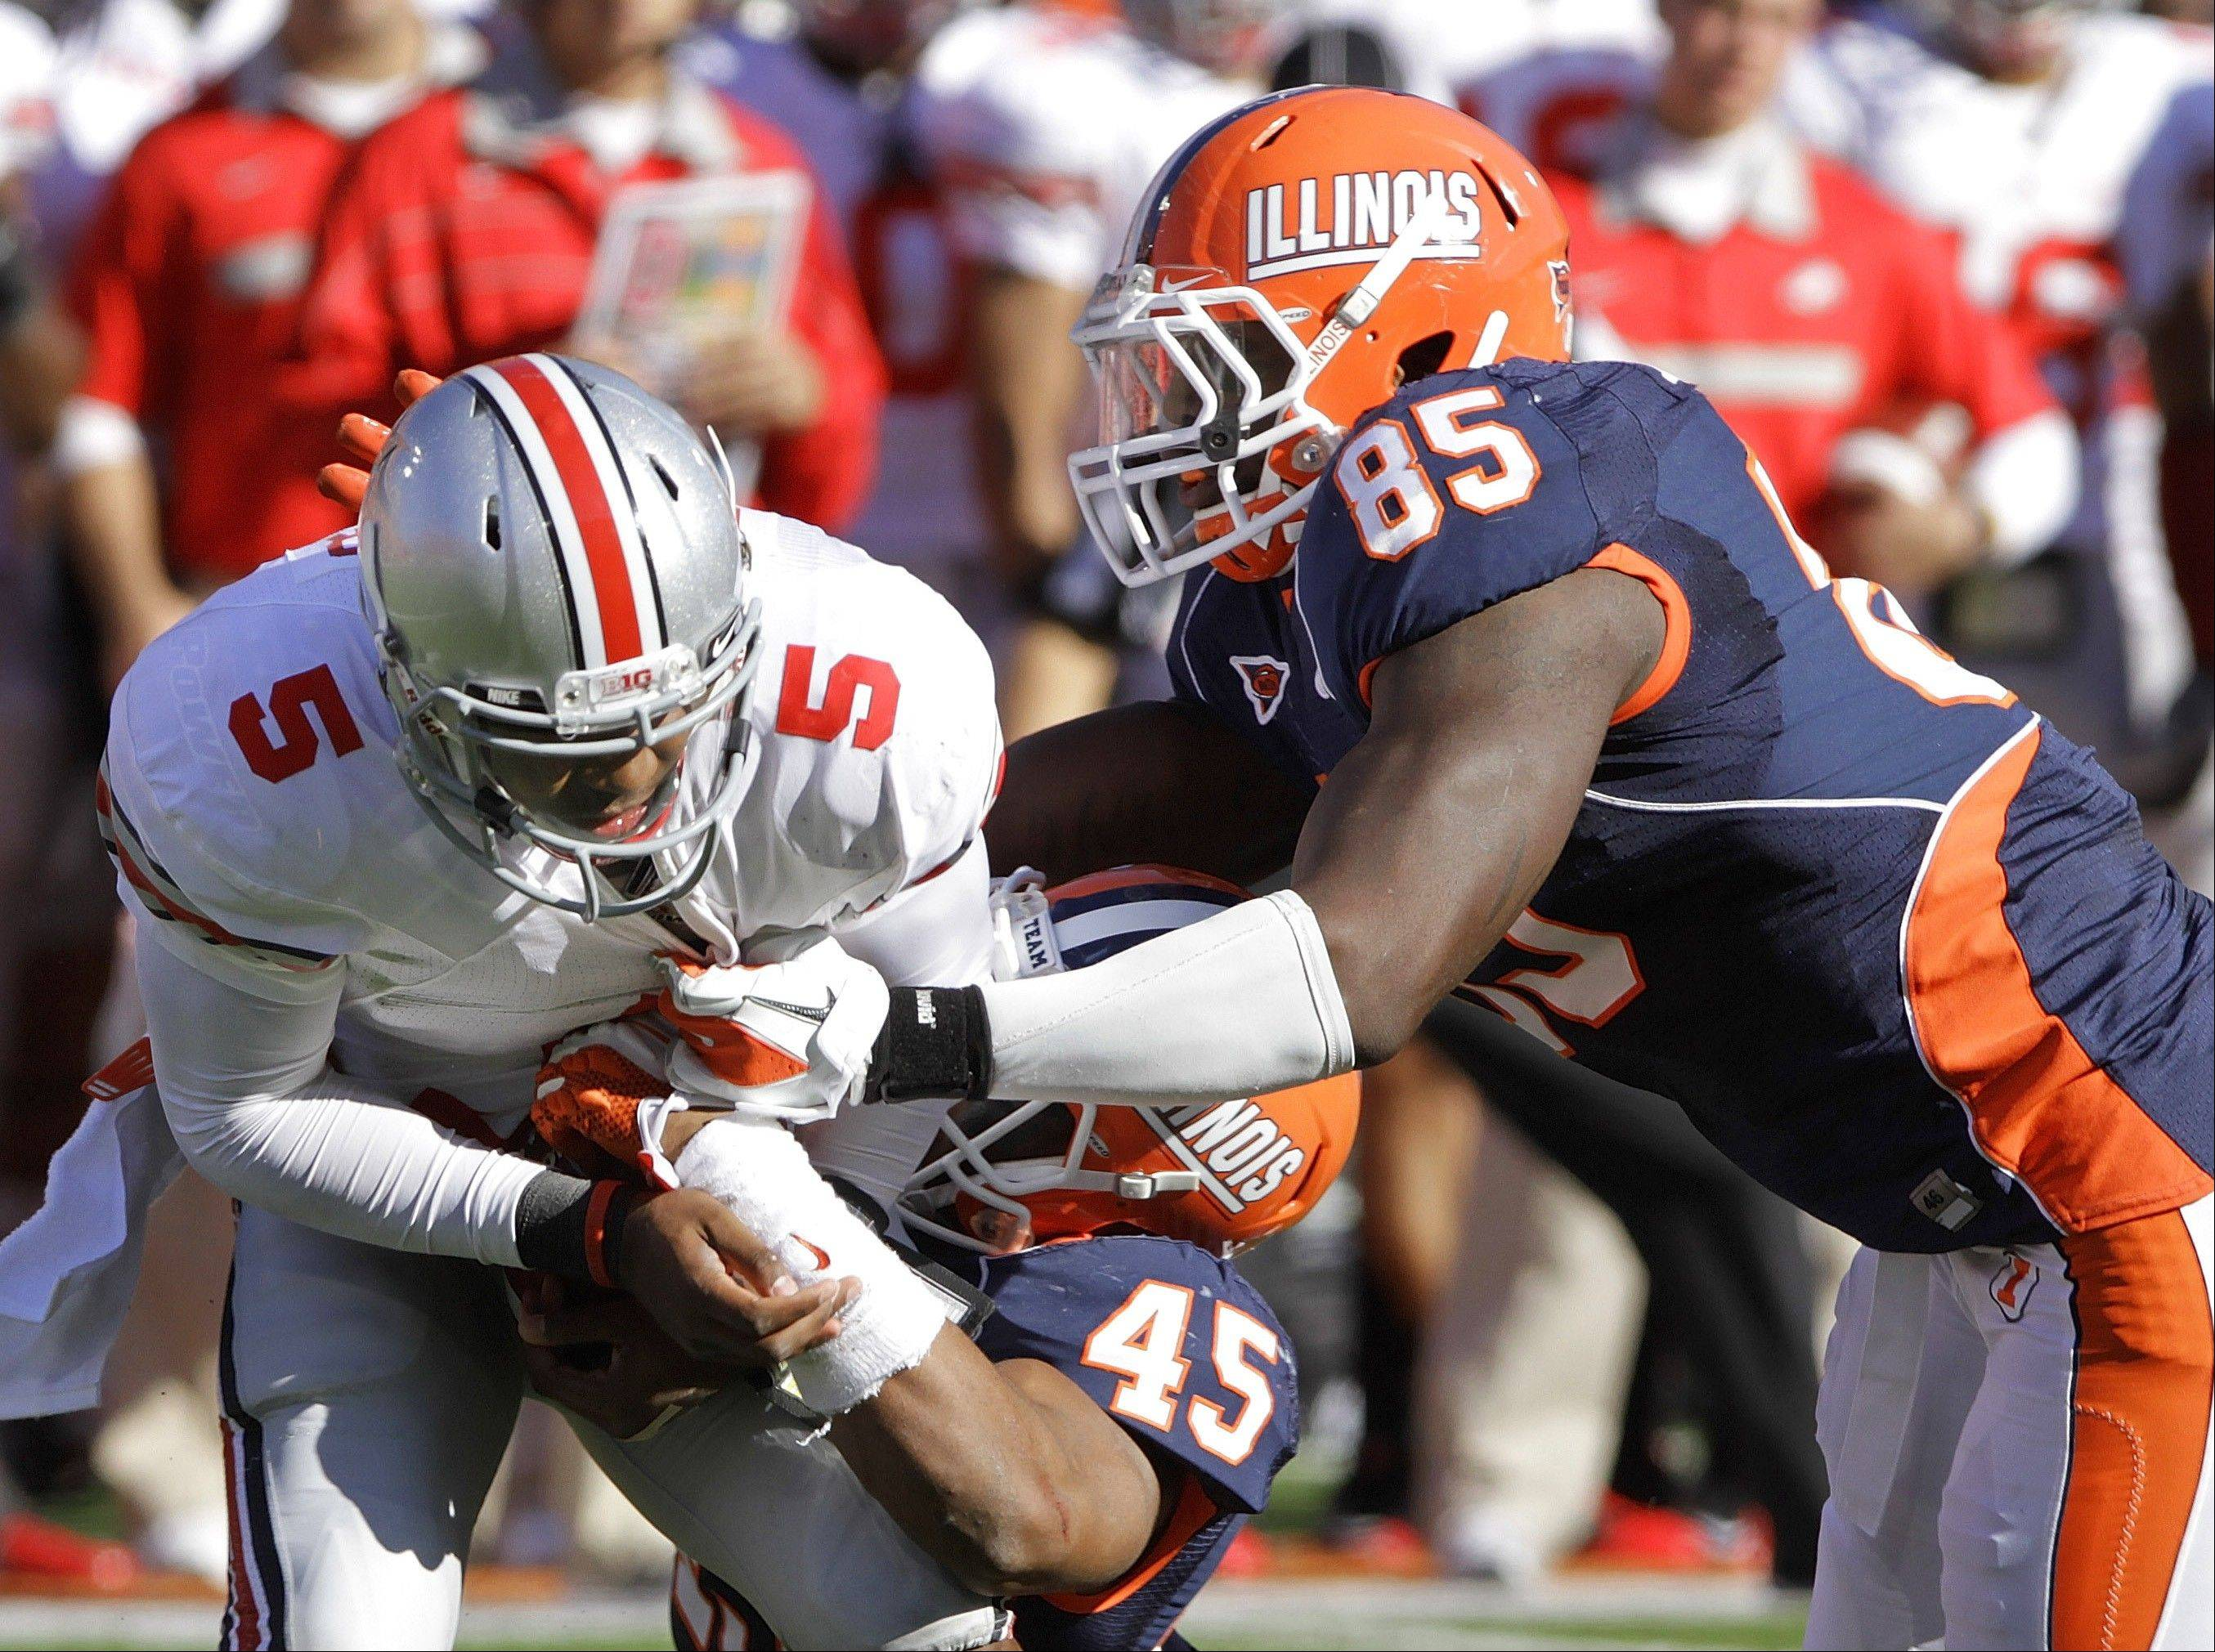 Illinois defensive end Whitney Mercilus (85) and linebacker Jonathan Brown (45) combine to sack Ohio State quarterback Braxton Miller during the 2011 game. Ohio State attempted just four passes � completing one � in a 17-7 victory.